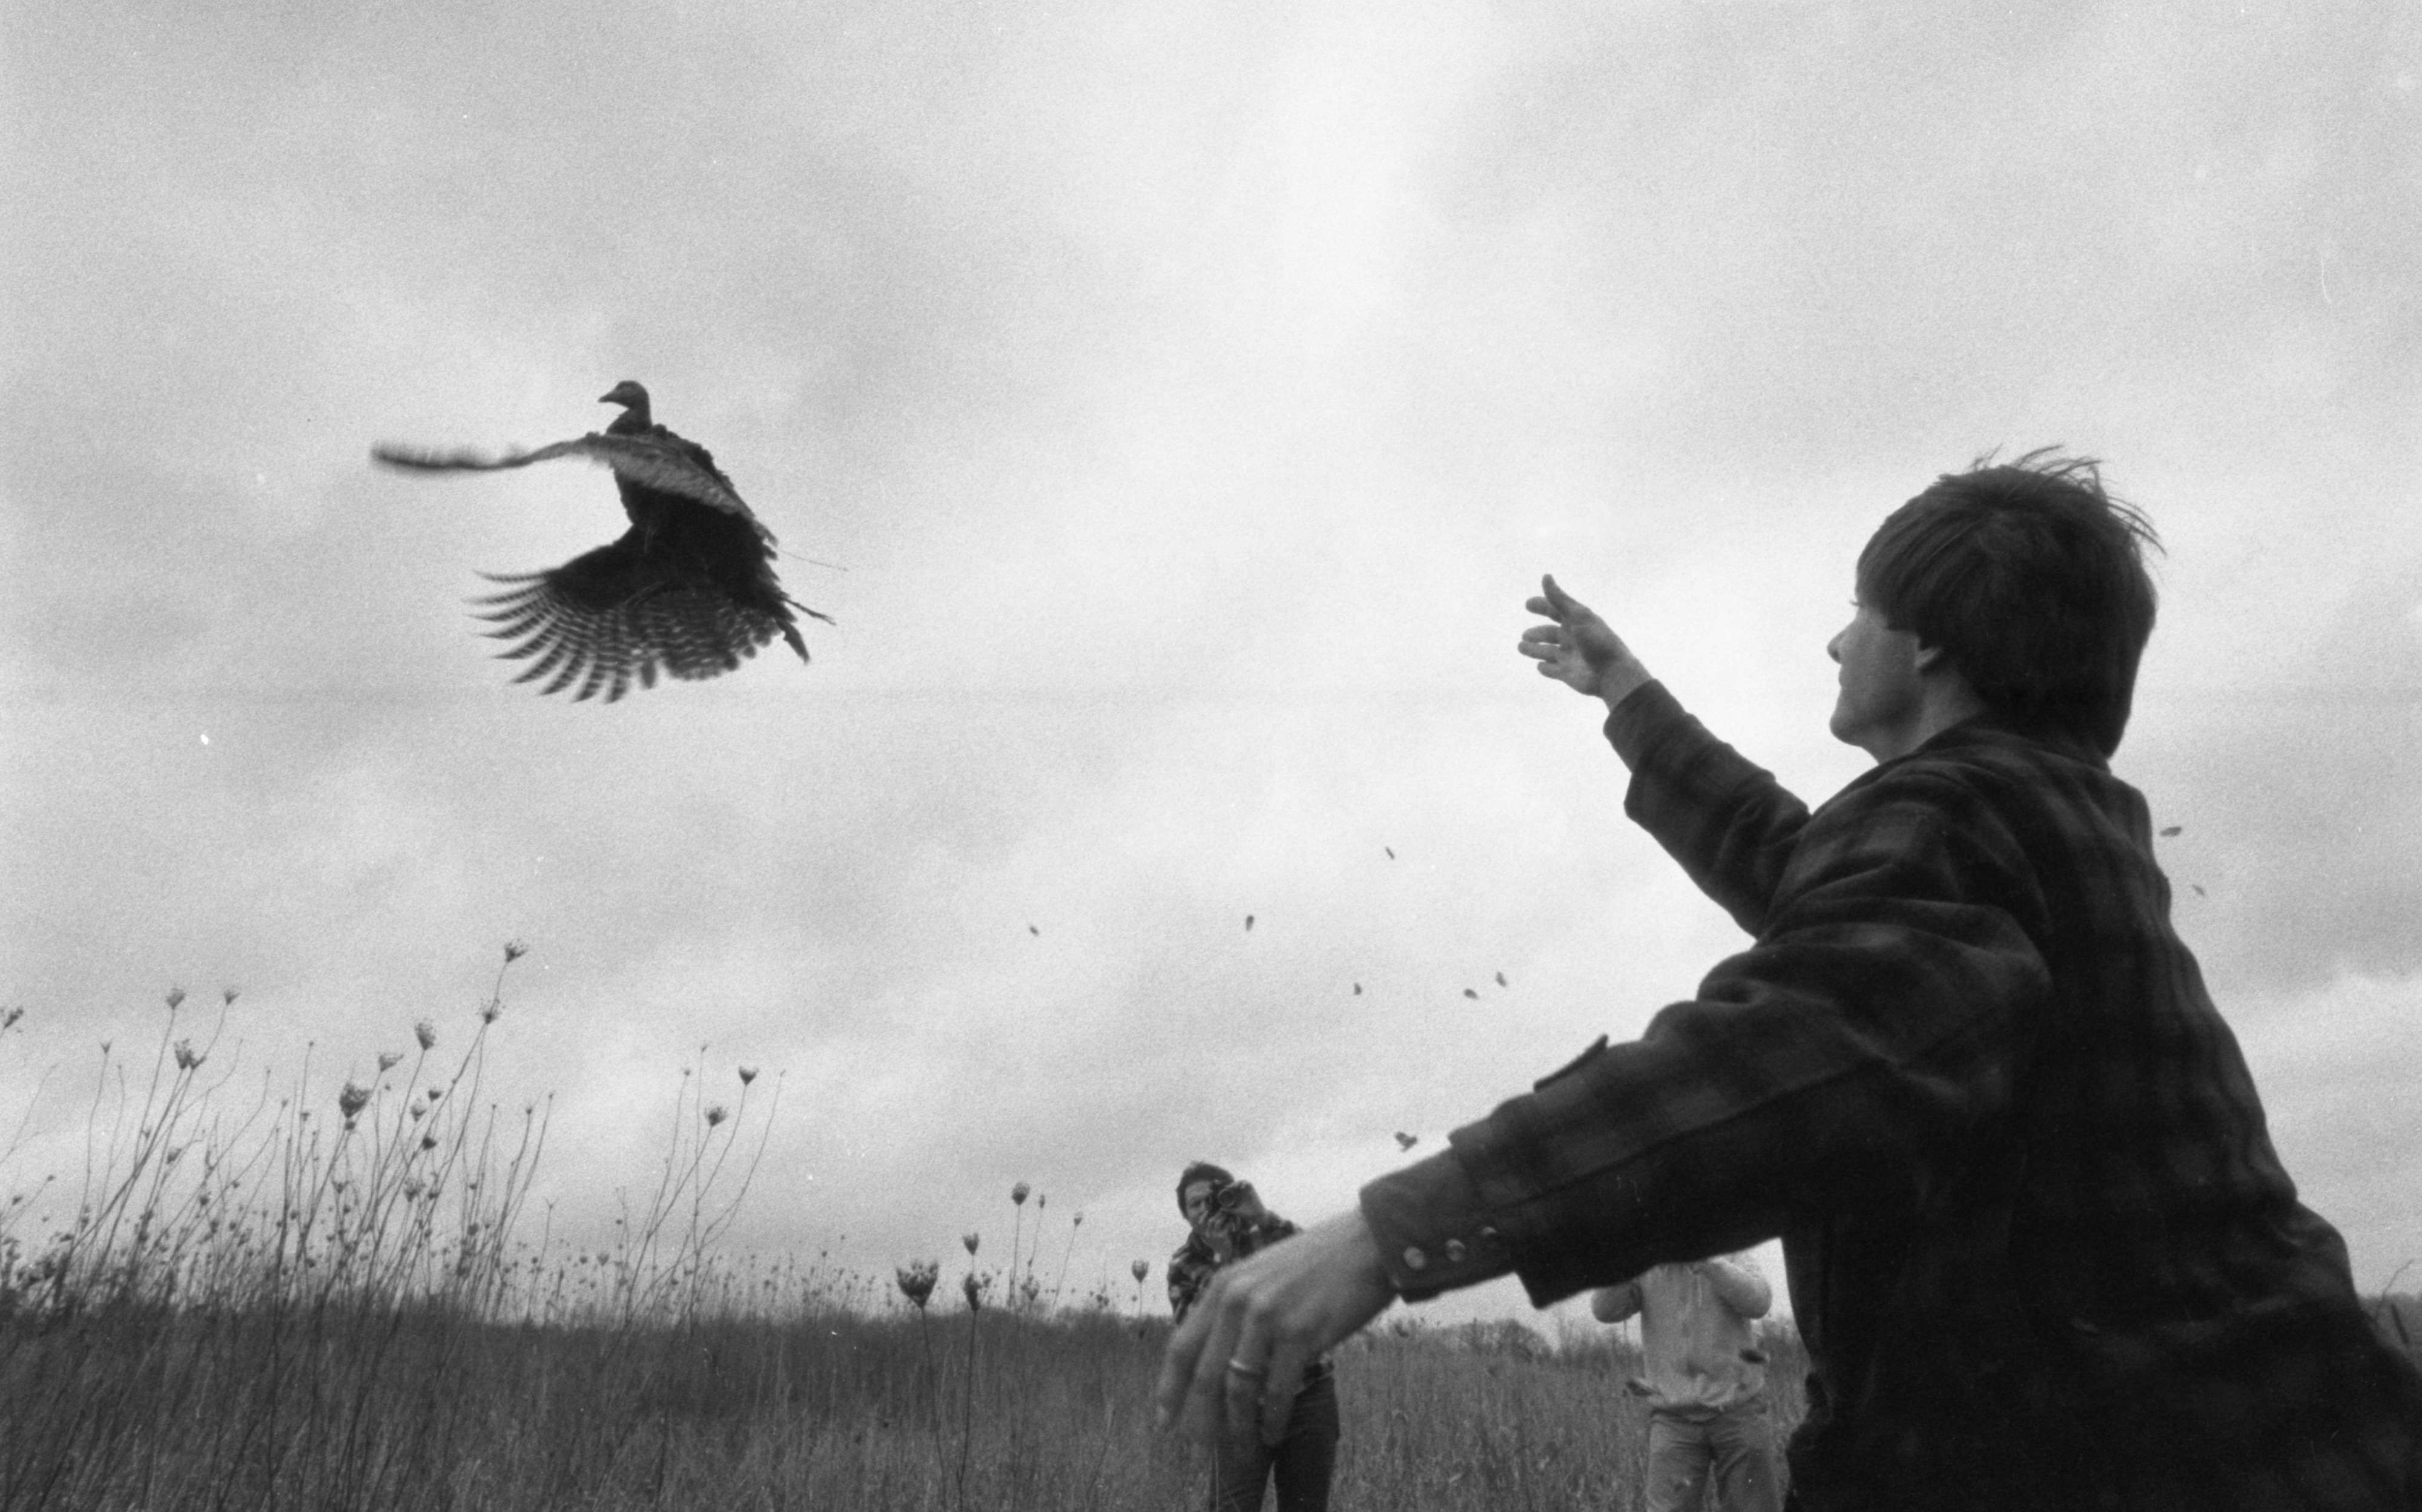 Wayne Bronner Releases A Wild Turkey At Waterloo Recreation Area, February 1983 image